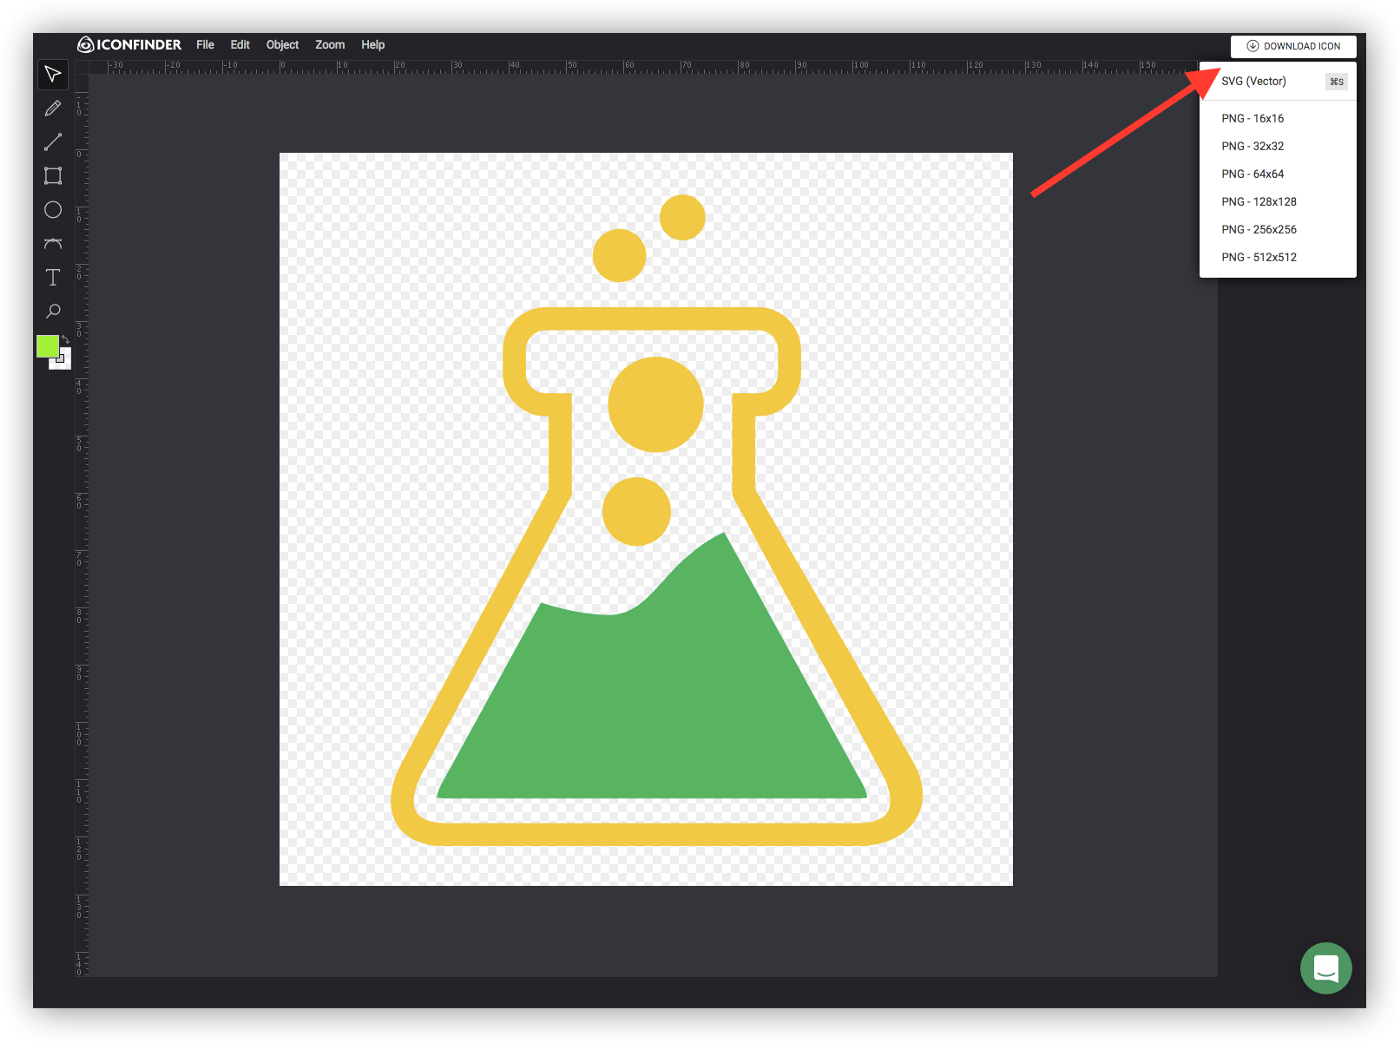 4 easy ways to recolor icons - The Iconfinder Blog